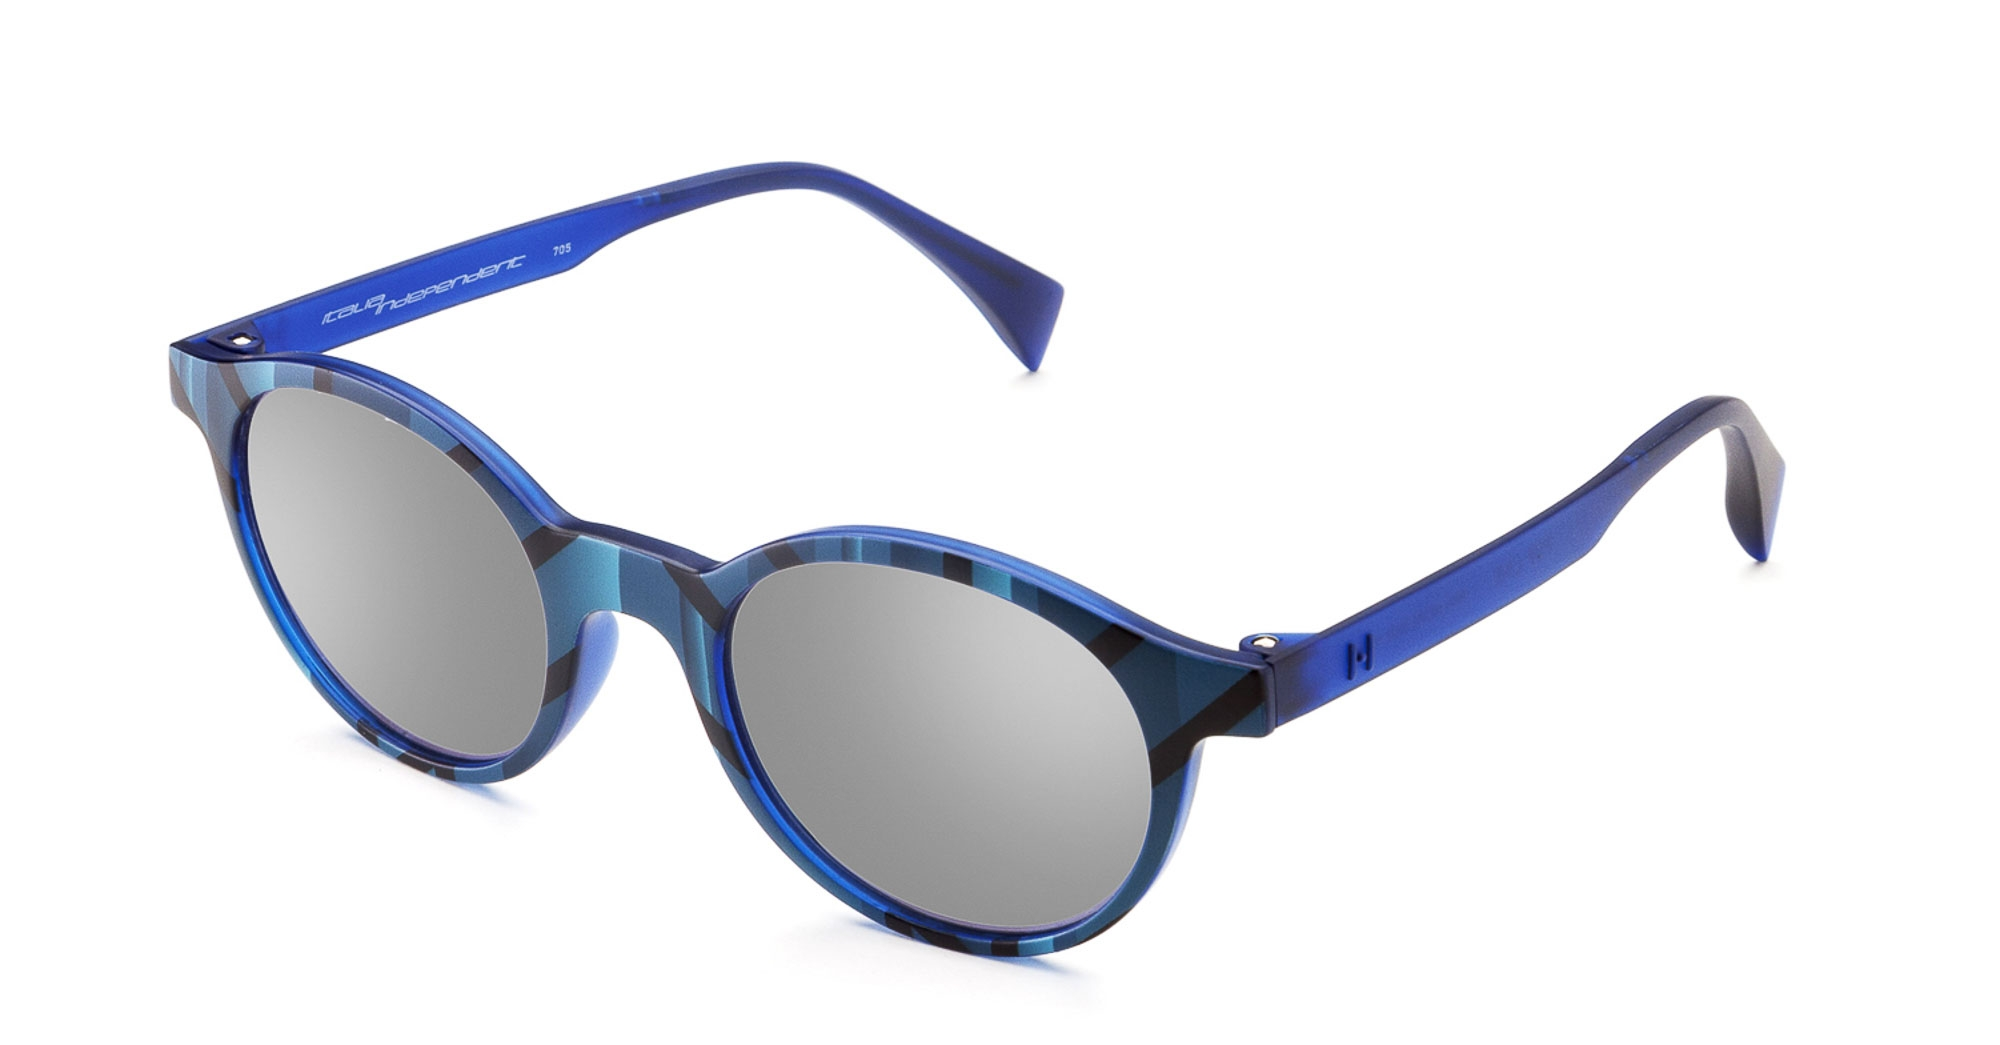 Italia Independent - Occhiale da Sole Unisex Kids, I-I EYEWEAR, Matte Blu/Grey Shaded  ISB004 SCD 022  C45